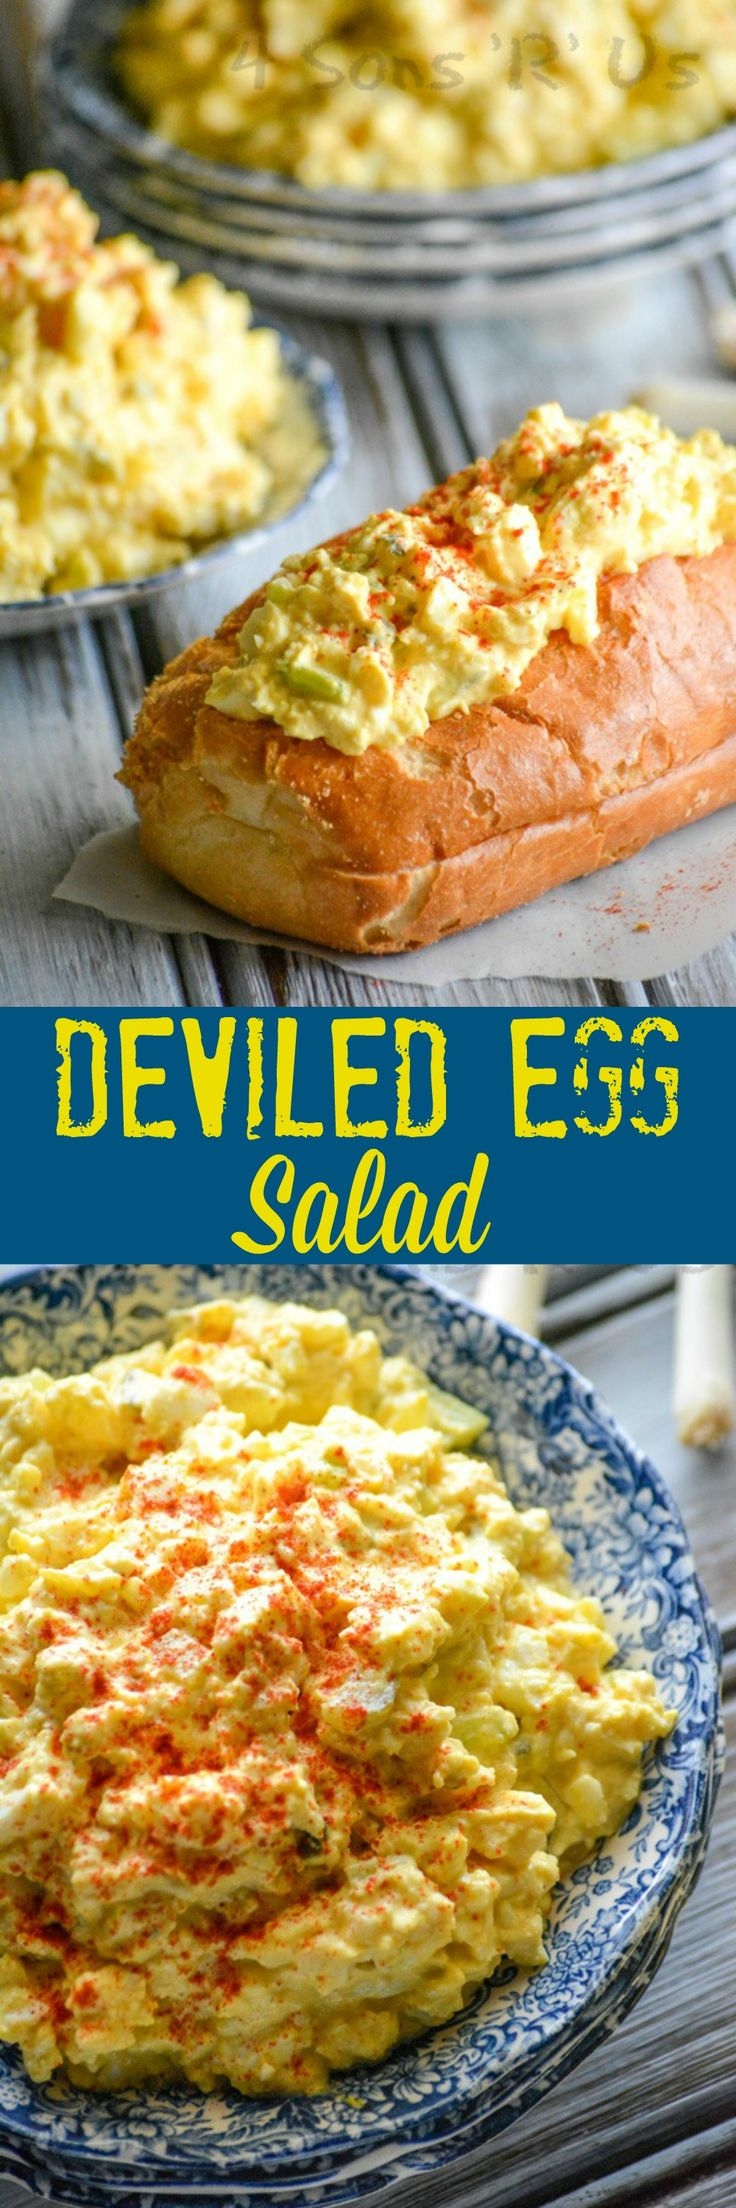 Don't wait for a party to make a batch of yummy deviled eggs. With this easy Deviled Egg Salad, you can enjoy their creamy, seasoned taste any day- and serve it up for virtually any meal. Easter's coming, and with it one of the kids' favorite holiday treats. The annual[Read more]